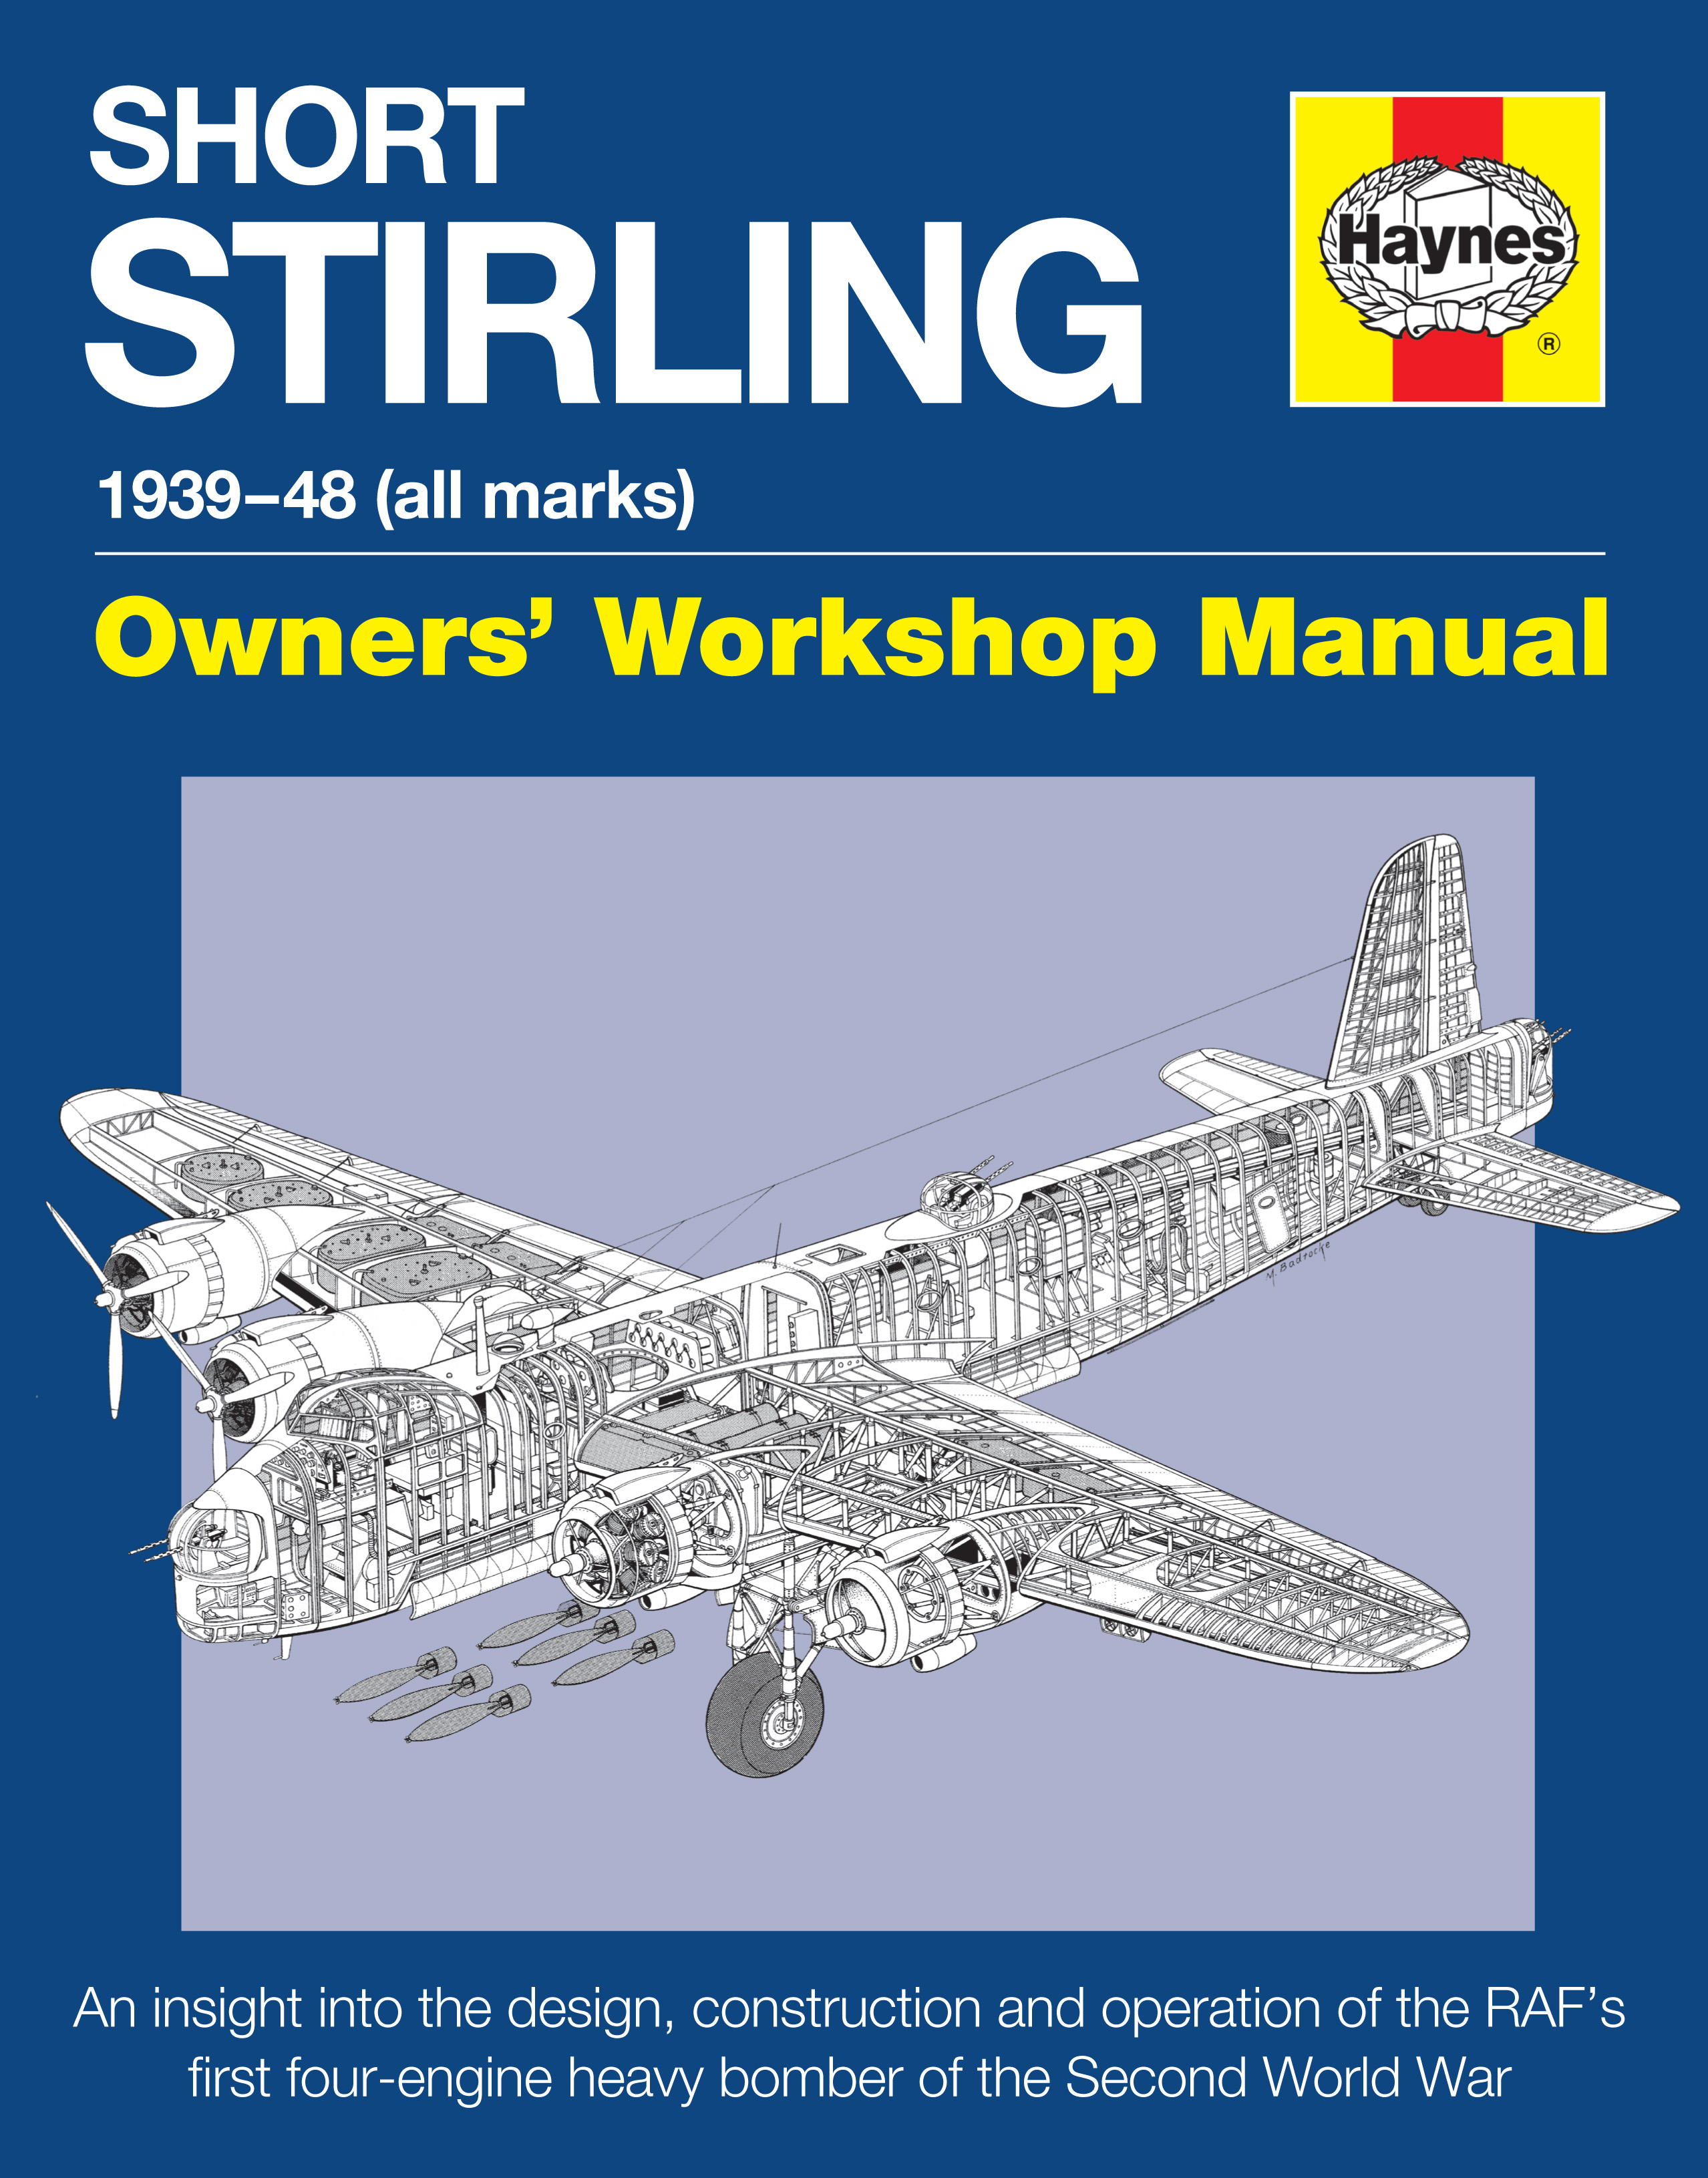 Short Stirling Manual_1